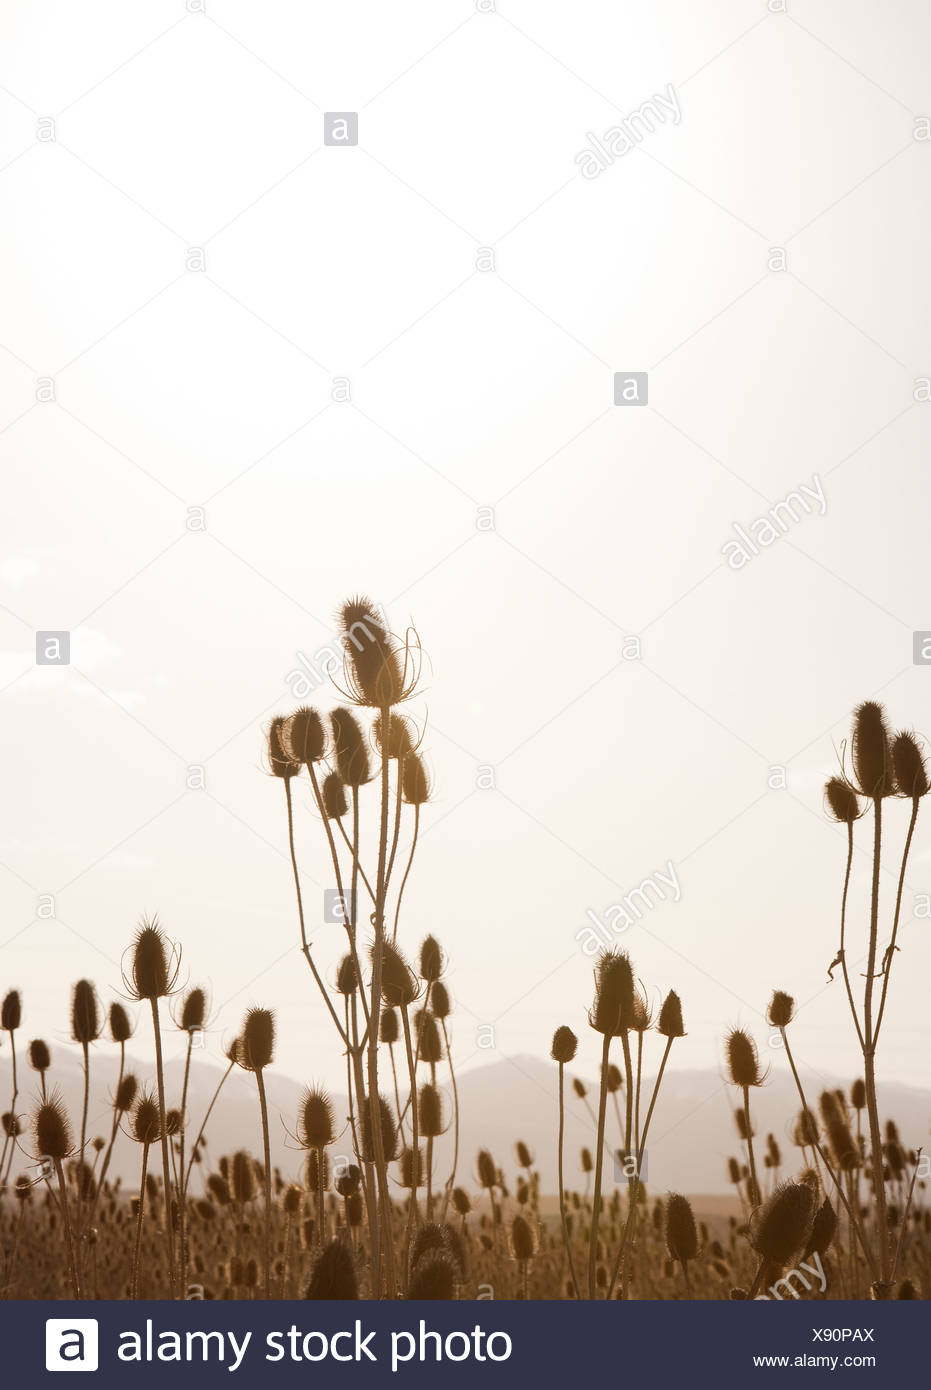 Backlit reeds and grass - Stock Image